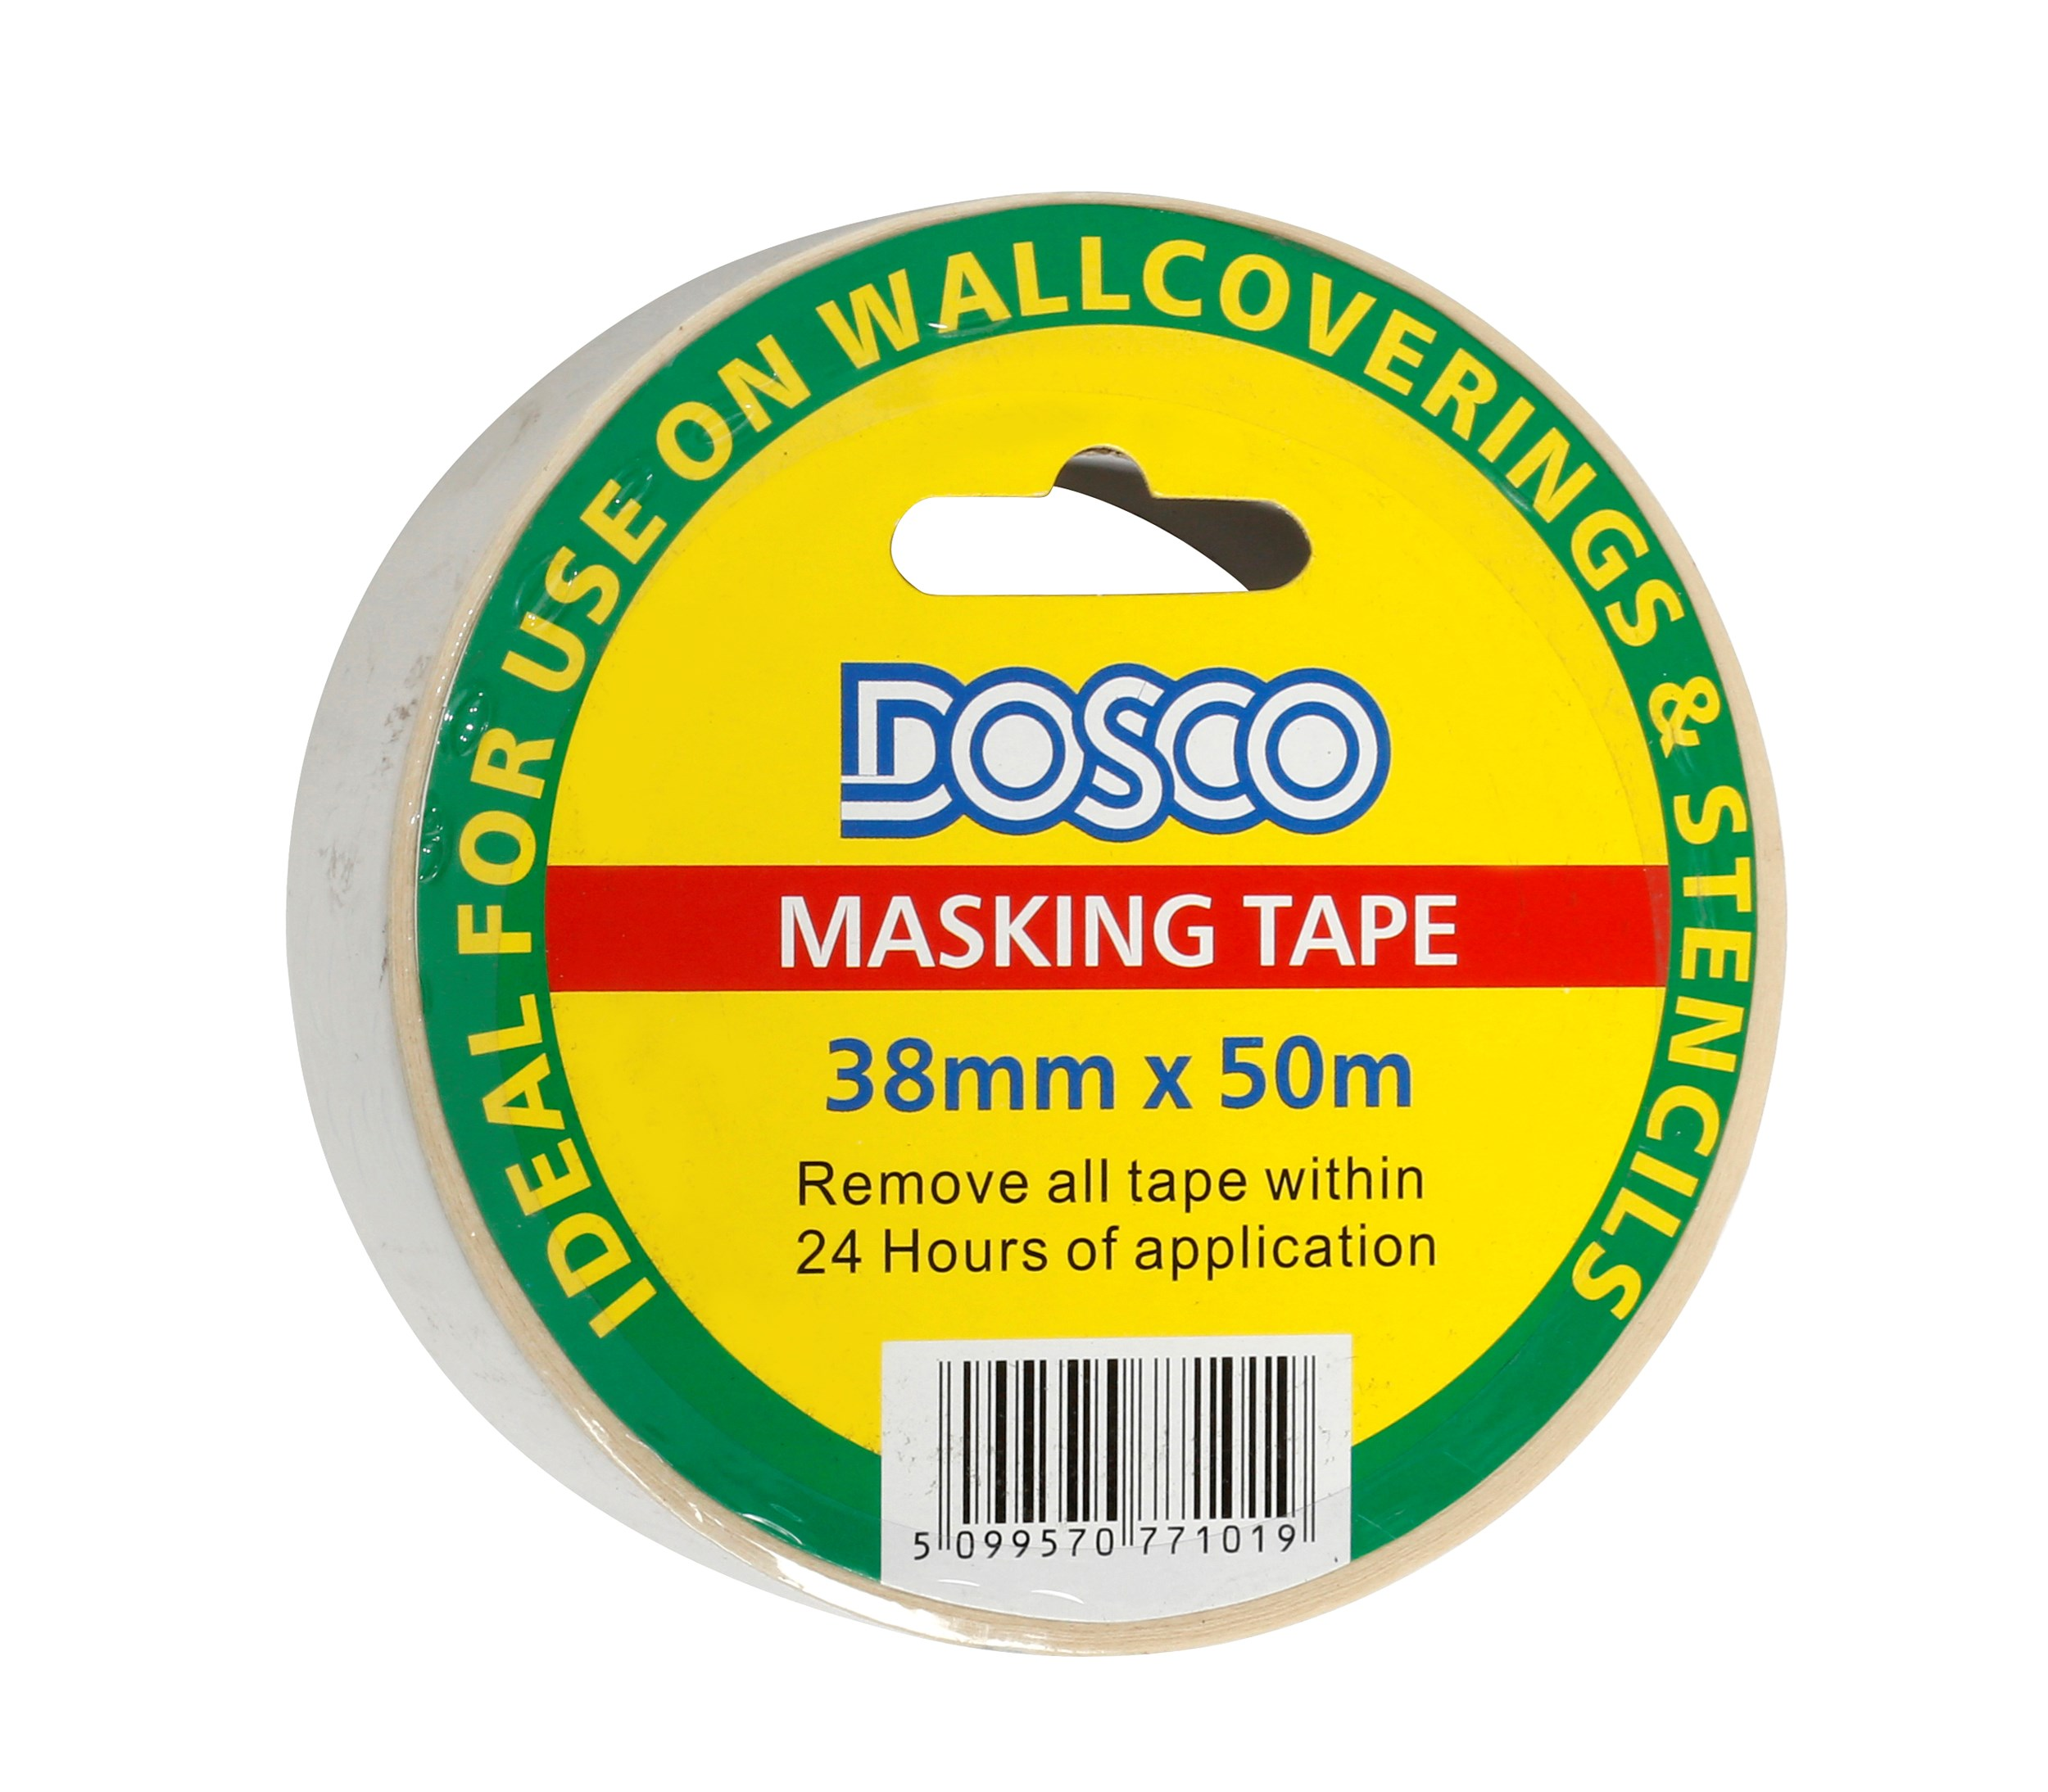 Dosco  Masking Tape - 38mm